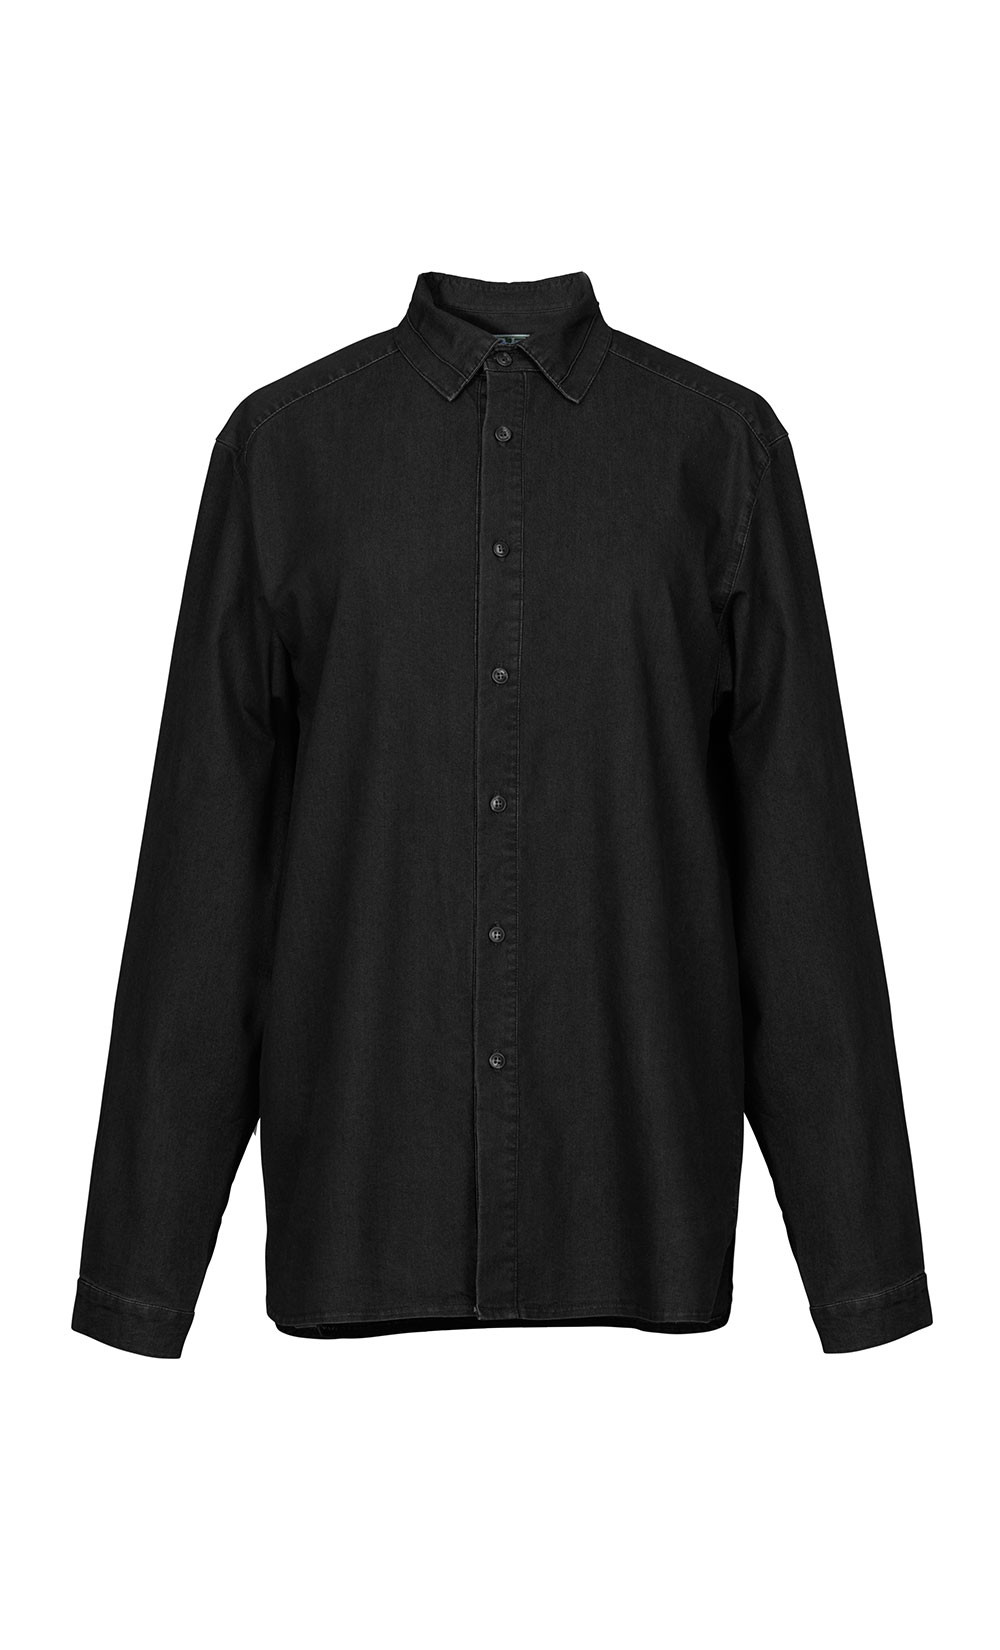 Zoro Black Linen Shirt